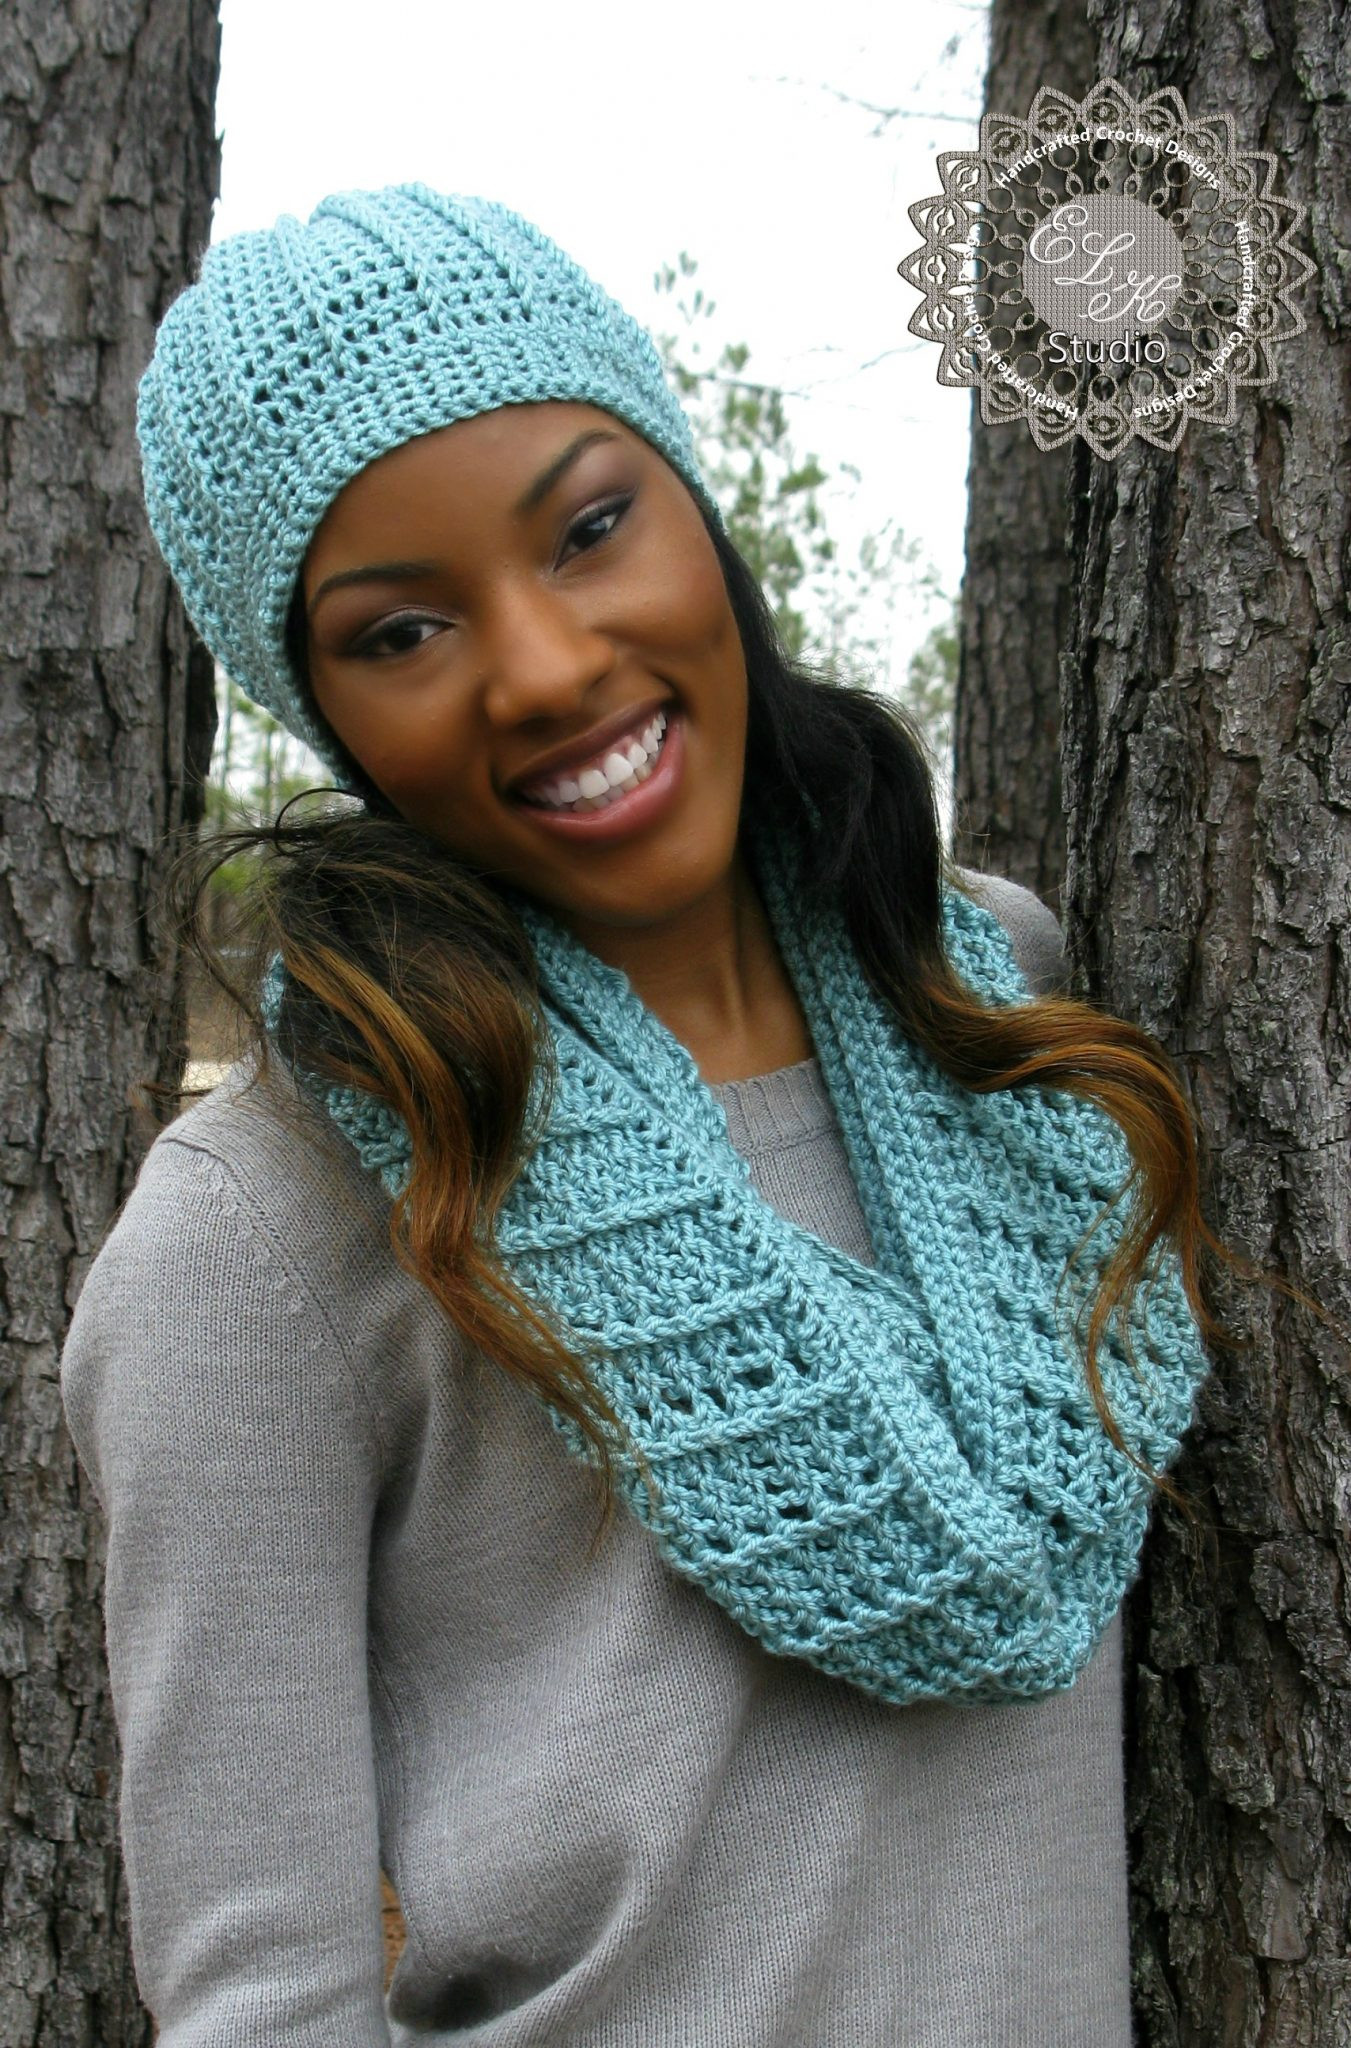 Awesome Country Appeal A Free Crochet Infinity Scarf Pattern Crochet Sets Of Lovely 43 Images Crochet Sets